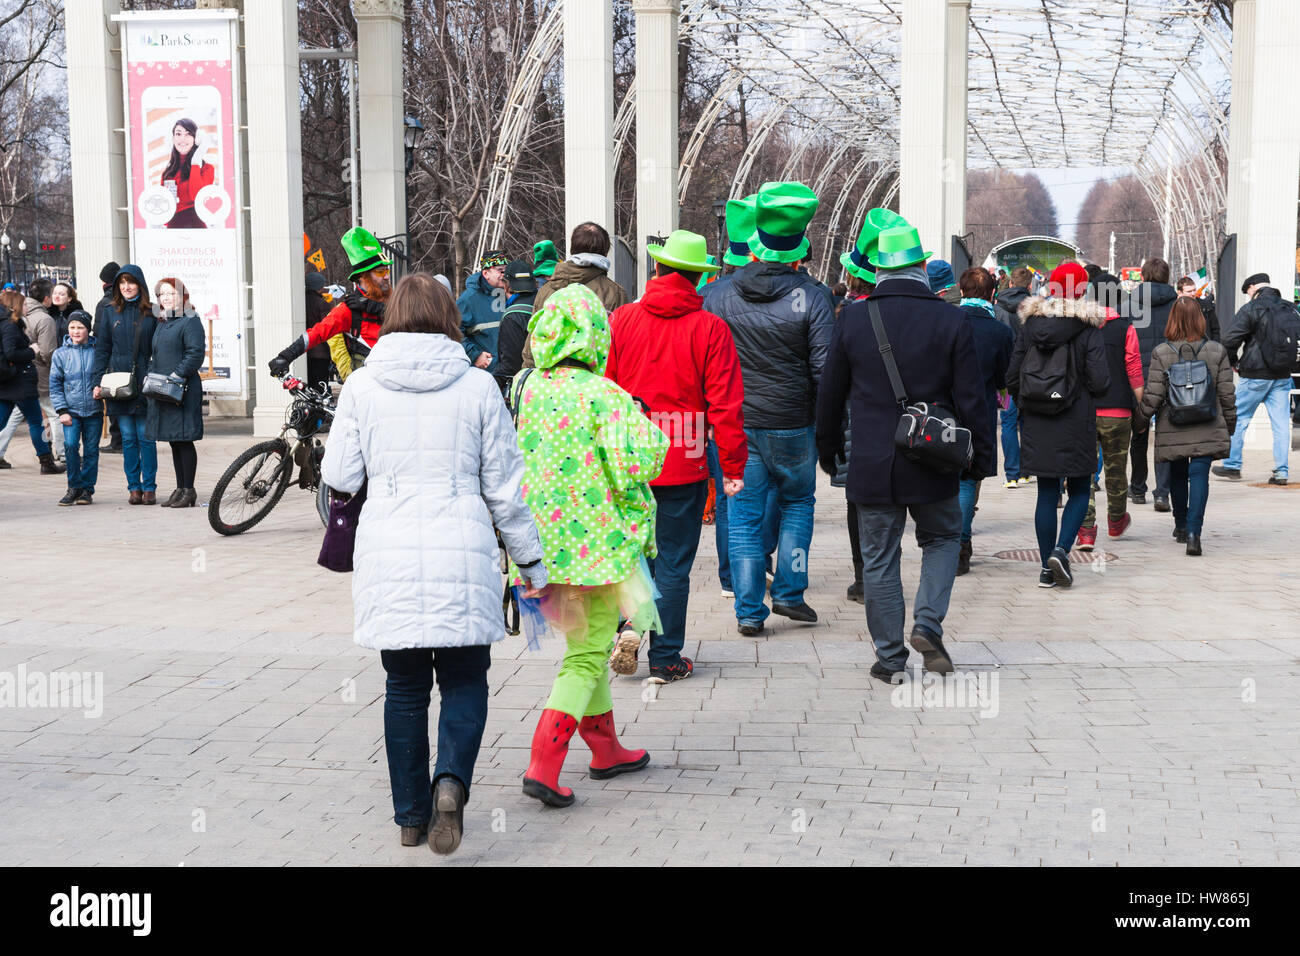 Ireland in Moscow - Parade of St. Patrick 2017 27